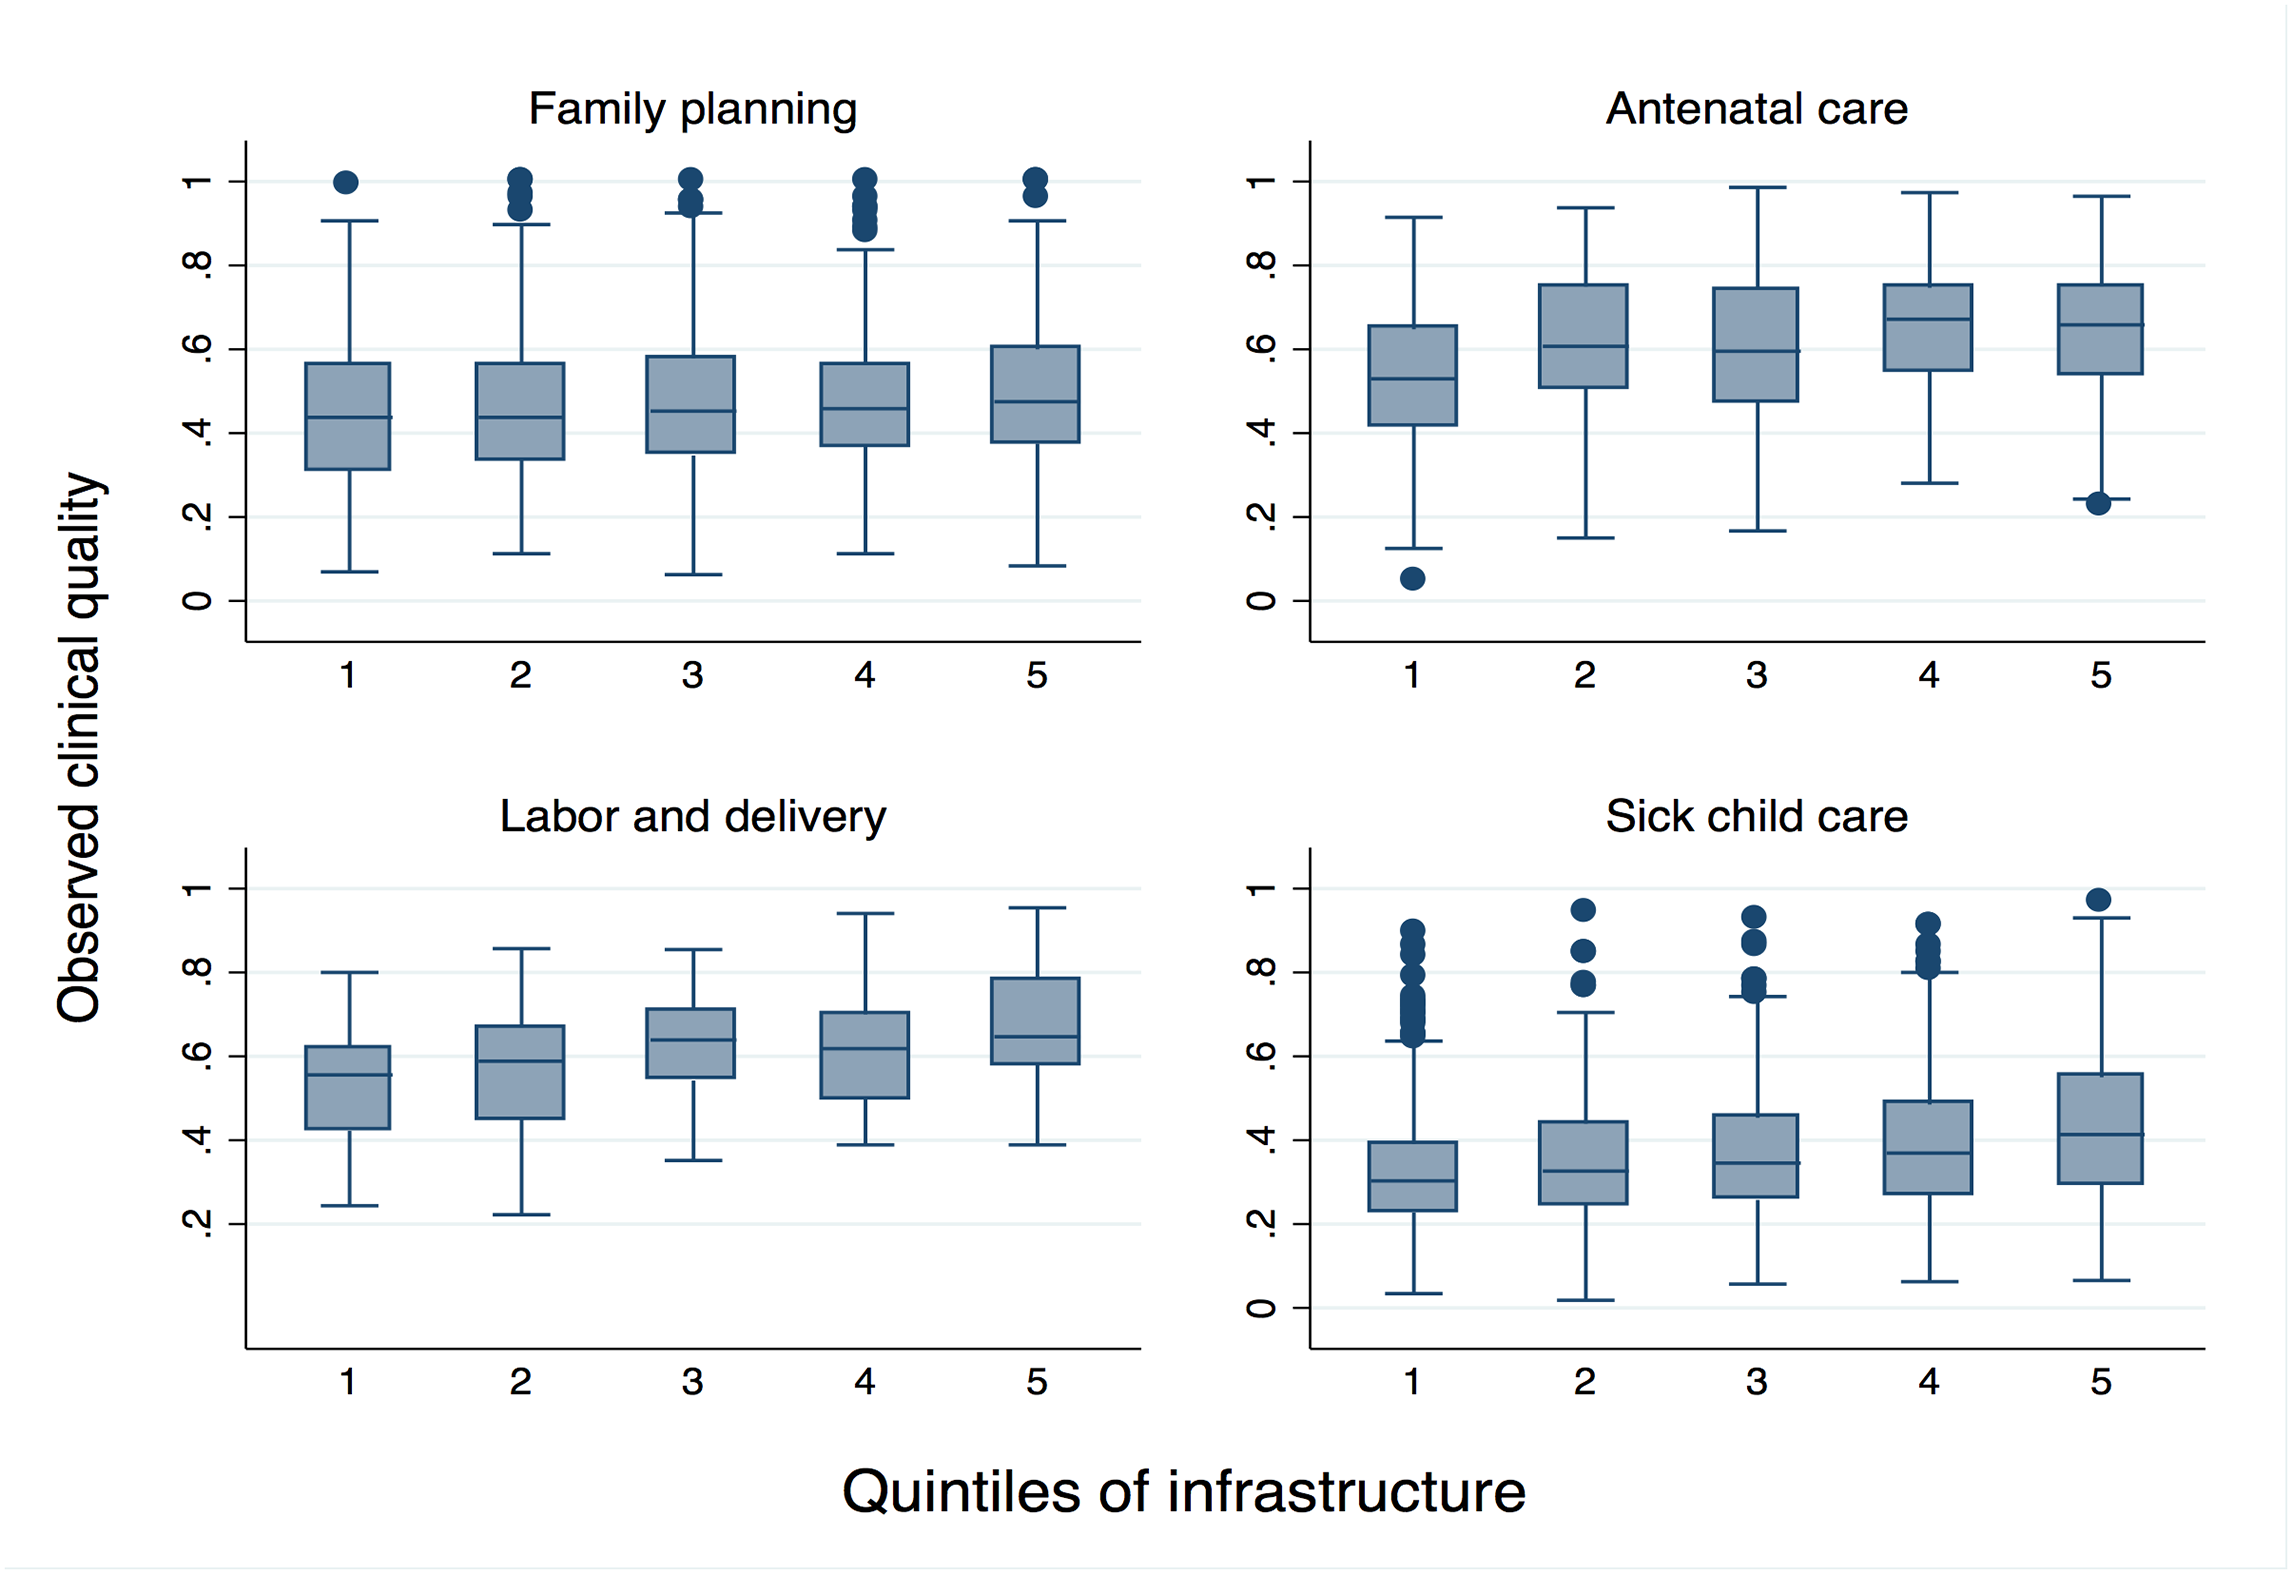 Range of observed clinical quality across quintiles of infrastructure.